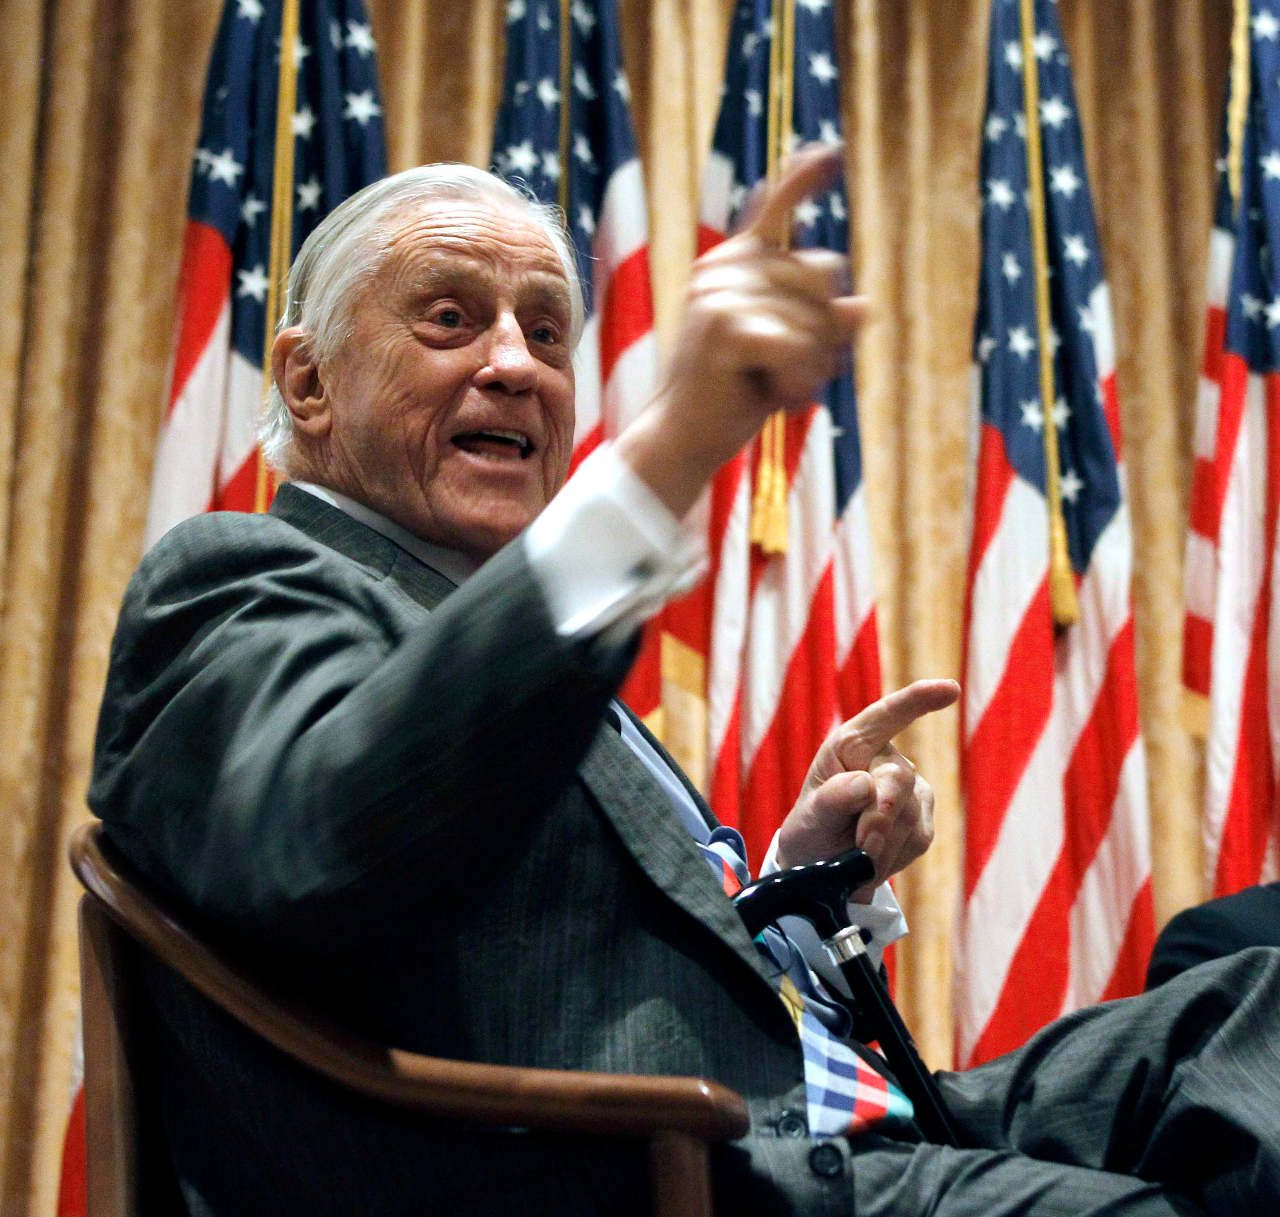 Muere Ben Bradlee, el legendario editor del Washington Post